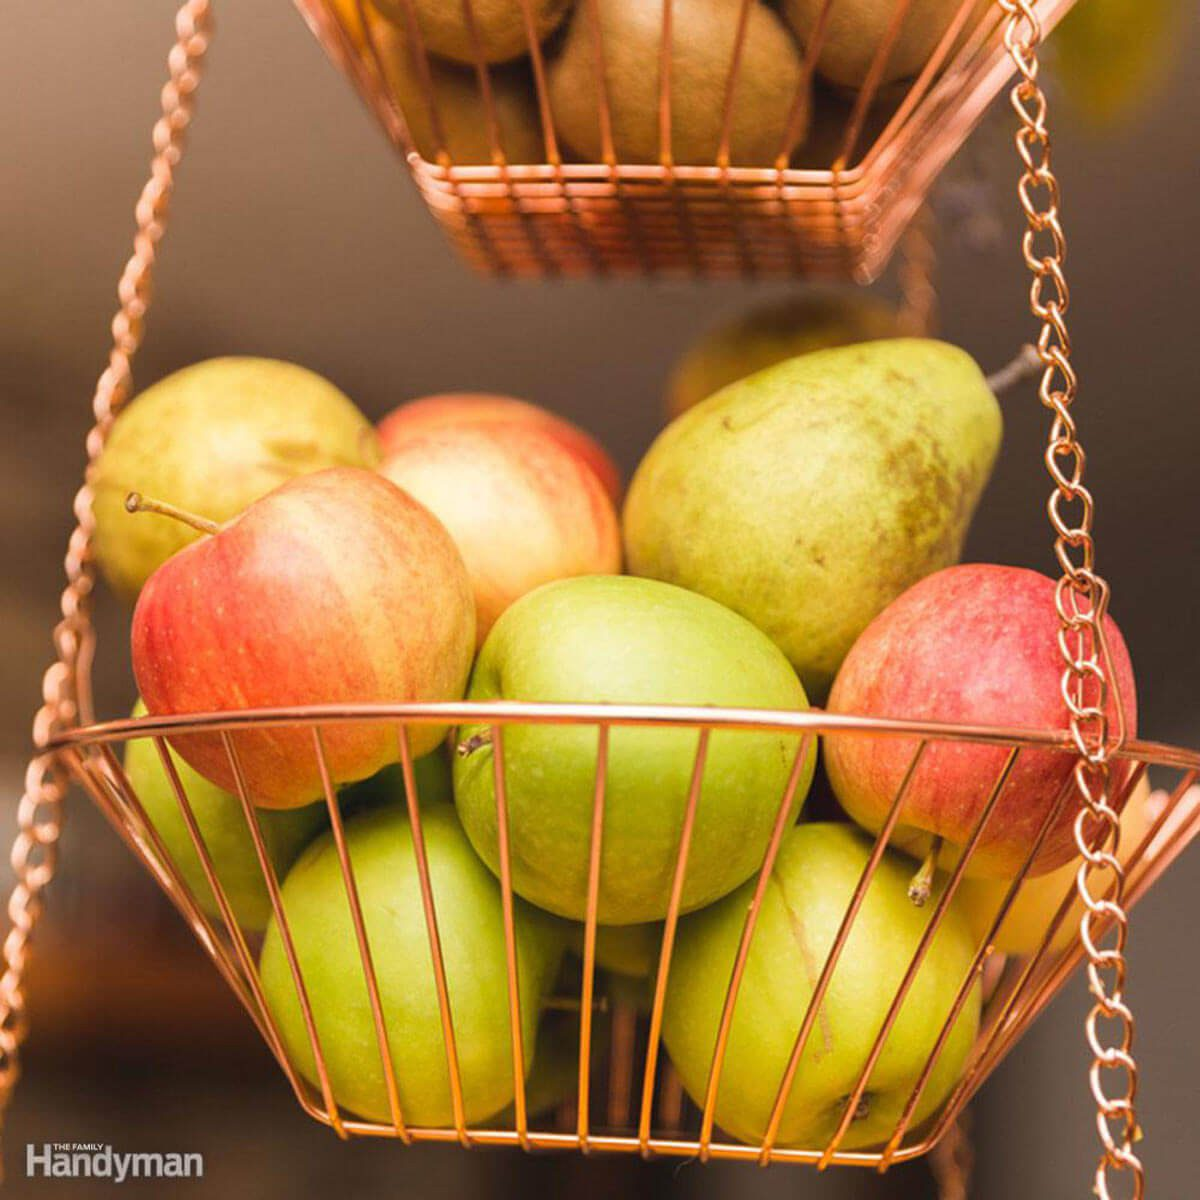 Red and green apples with pears in a hanging metal basket inside a kitchen.